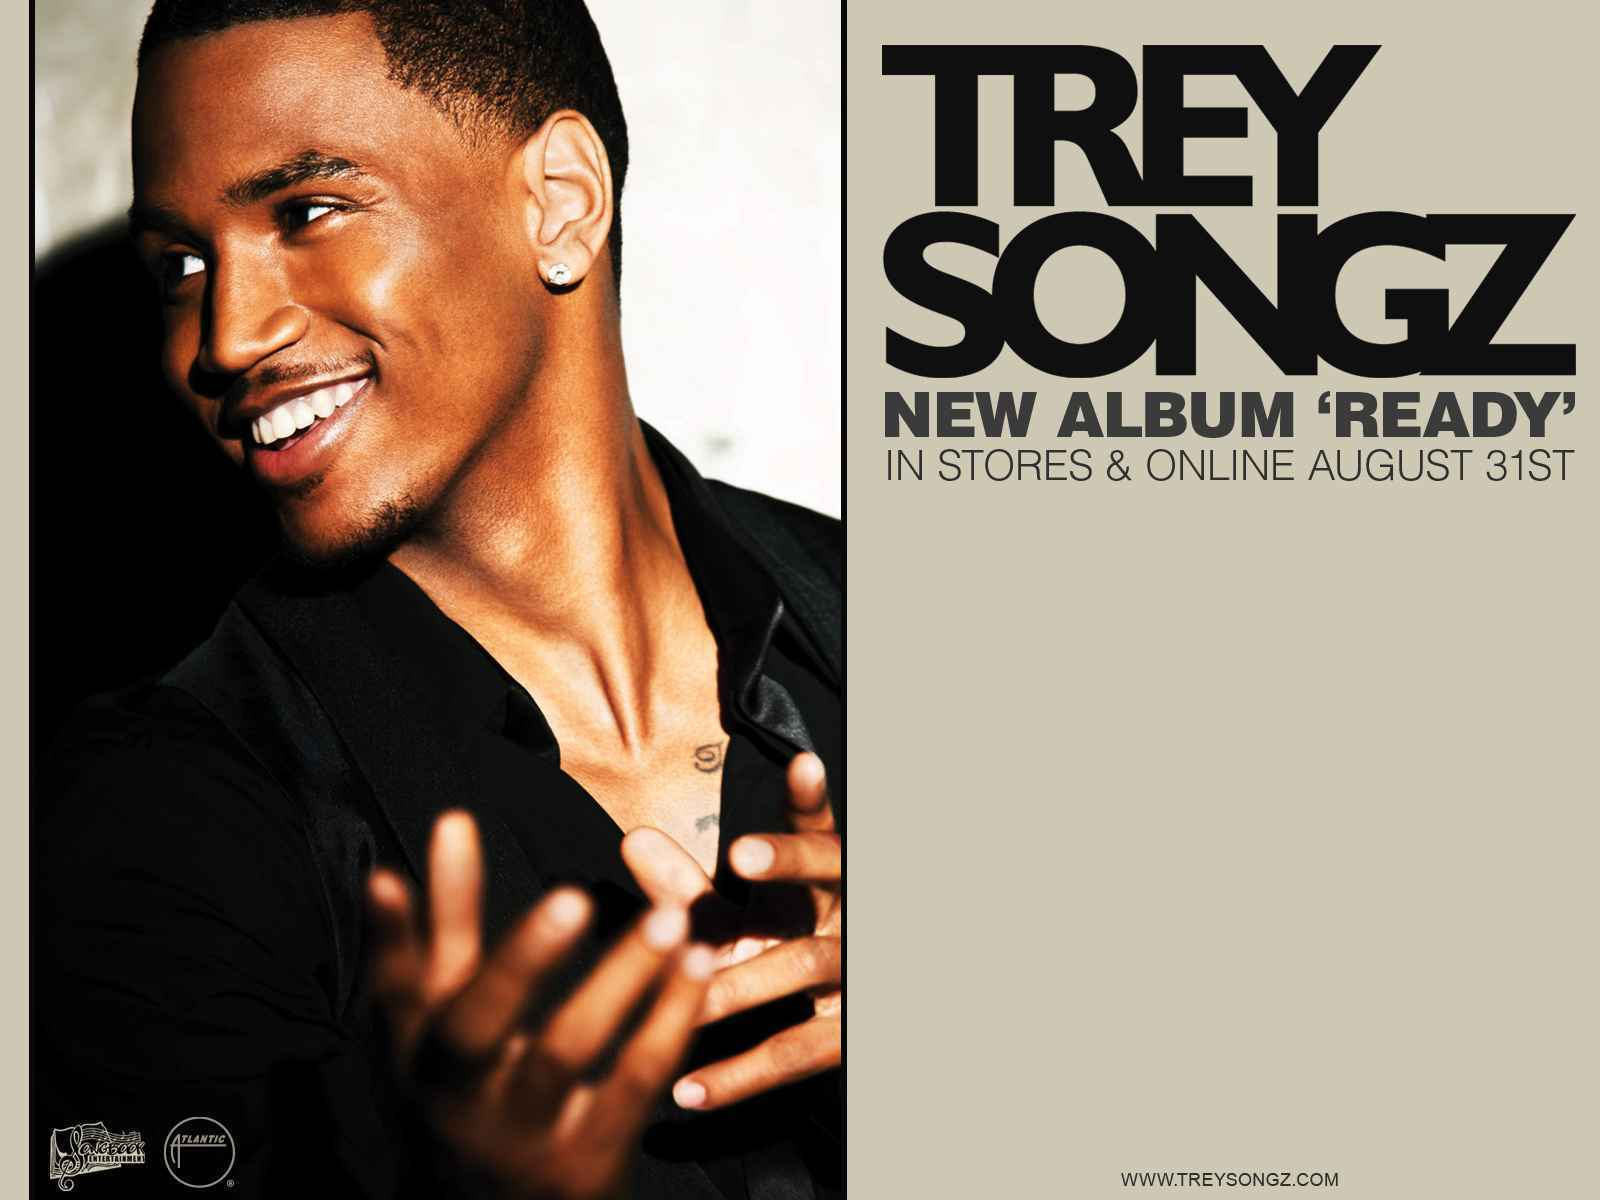 trey songz images hd - photo #12